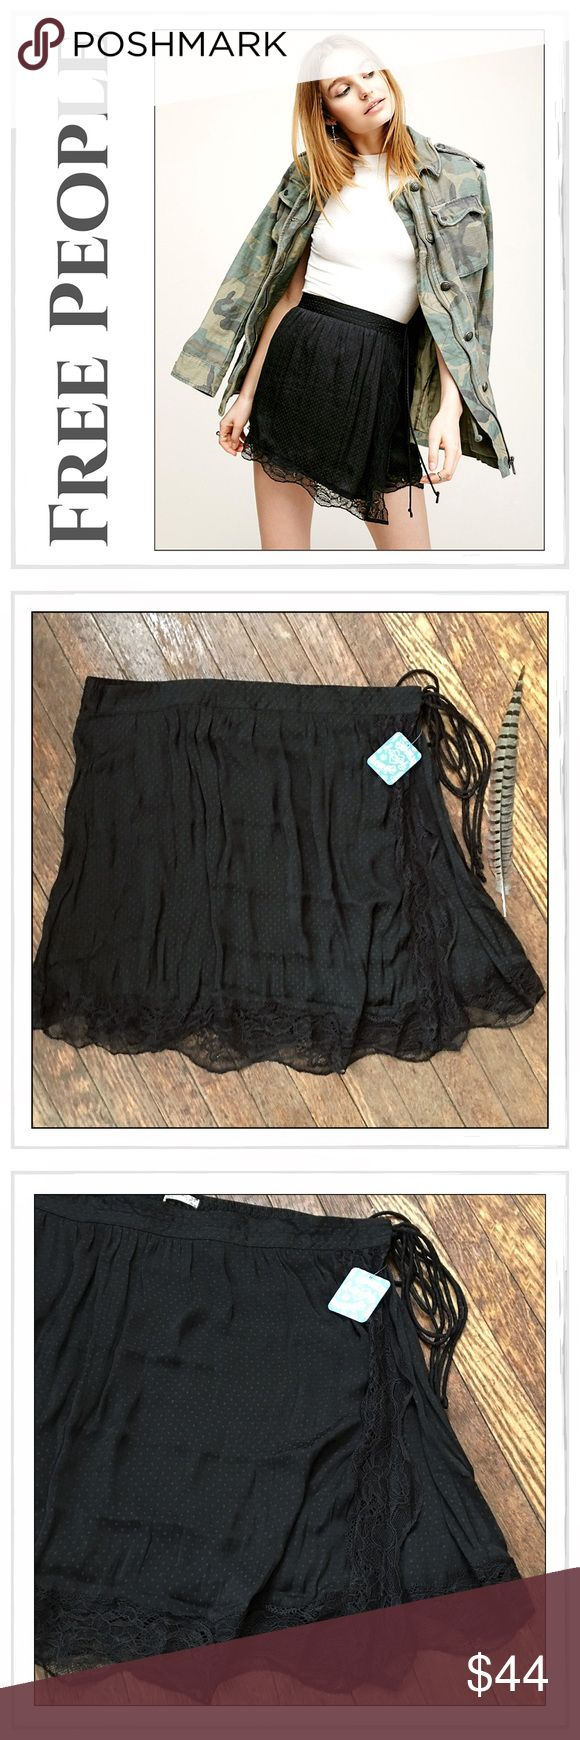 ✨Free People Tied Half Slip Skirt✨ ✨Free People Tied Half Slip Skirt✨Retro inspired wrap mini skirt slip featuring a tonal dotted print✨Delicate scalloped lace trim and an elastic band in back for an easy fit✨Adjustable side tie✨100% Polyester✨NWT✨Size Large✨SOLD OUT✨Last Two Pictures Are the same skirt in pink and used to show the style only in detail✨ Free People Skirts Mini